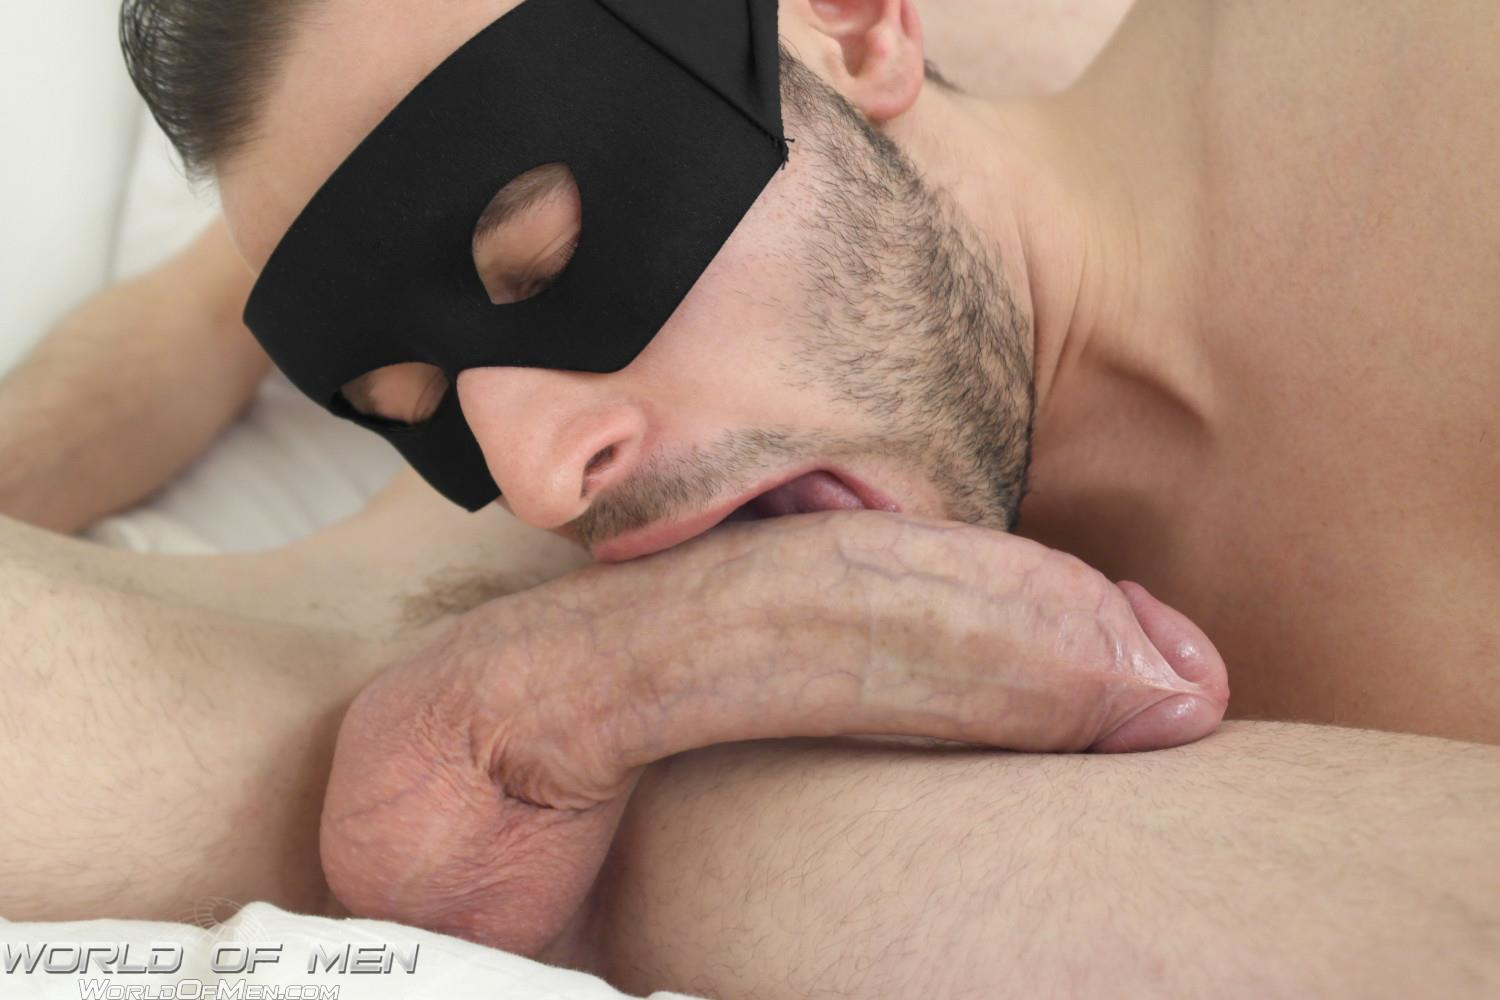 World of Men Ralph and Bjorn Big Uncut Cock Fucking Amateur Gay Porn 01 Married Virgin Masked Man Gets Fucked By A Huge Uncut Cock